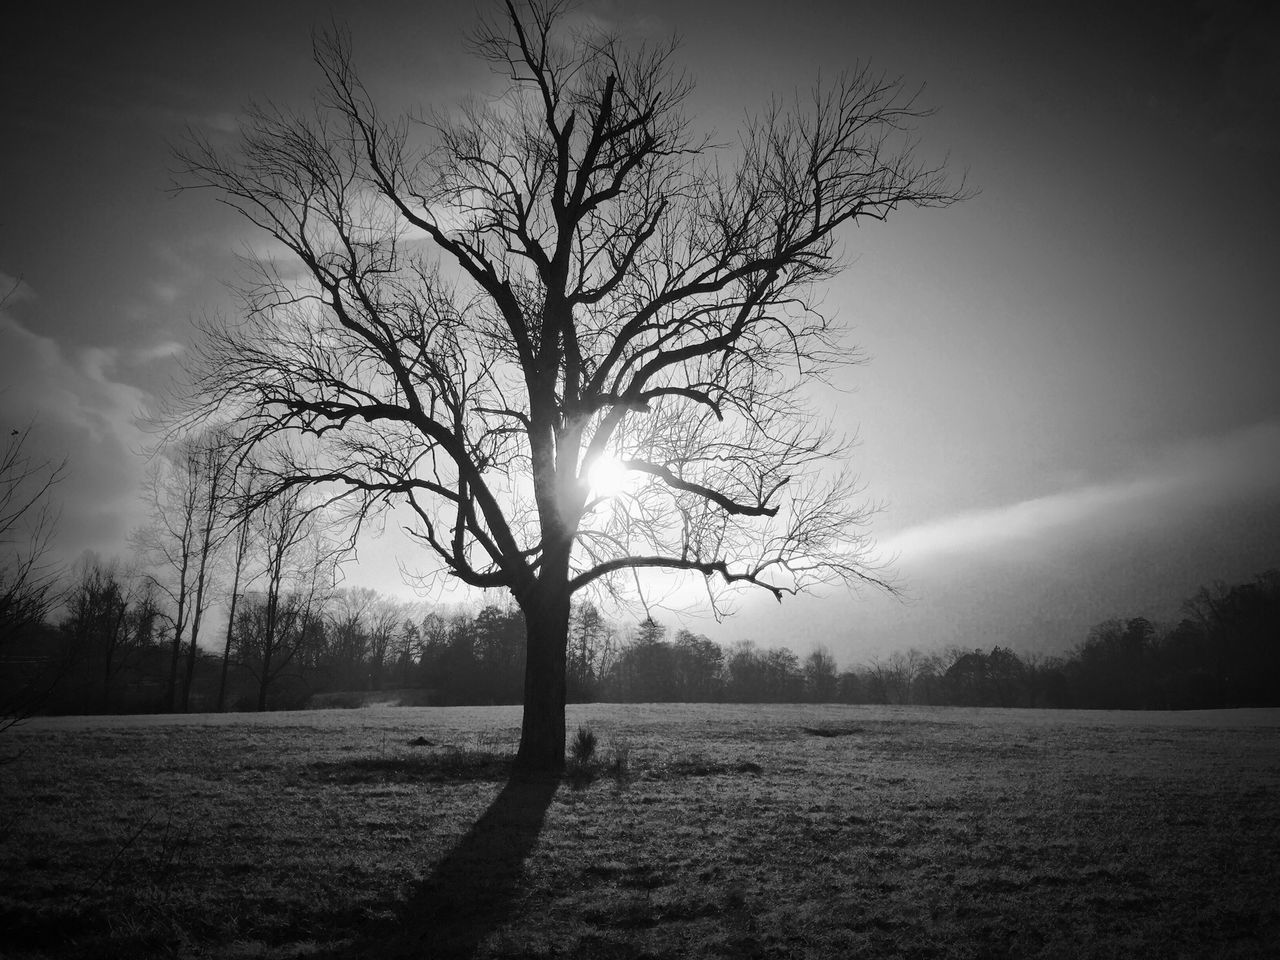 Silhouette Bare Trees On Field